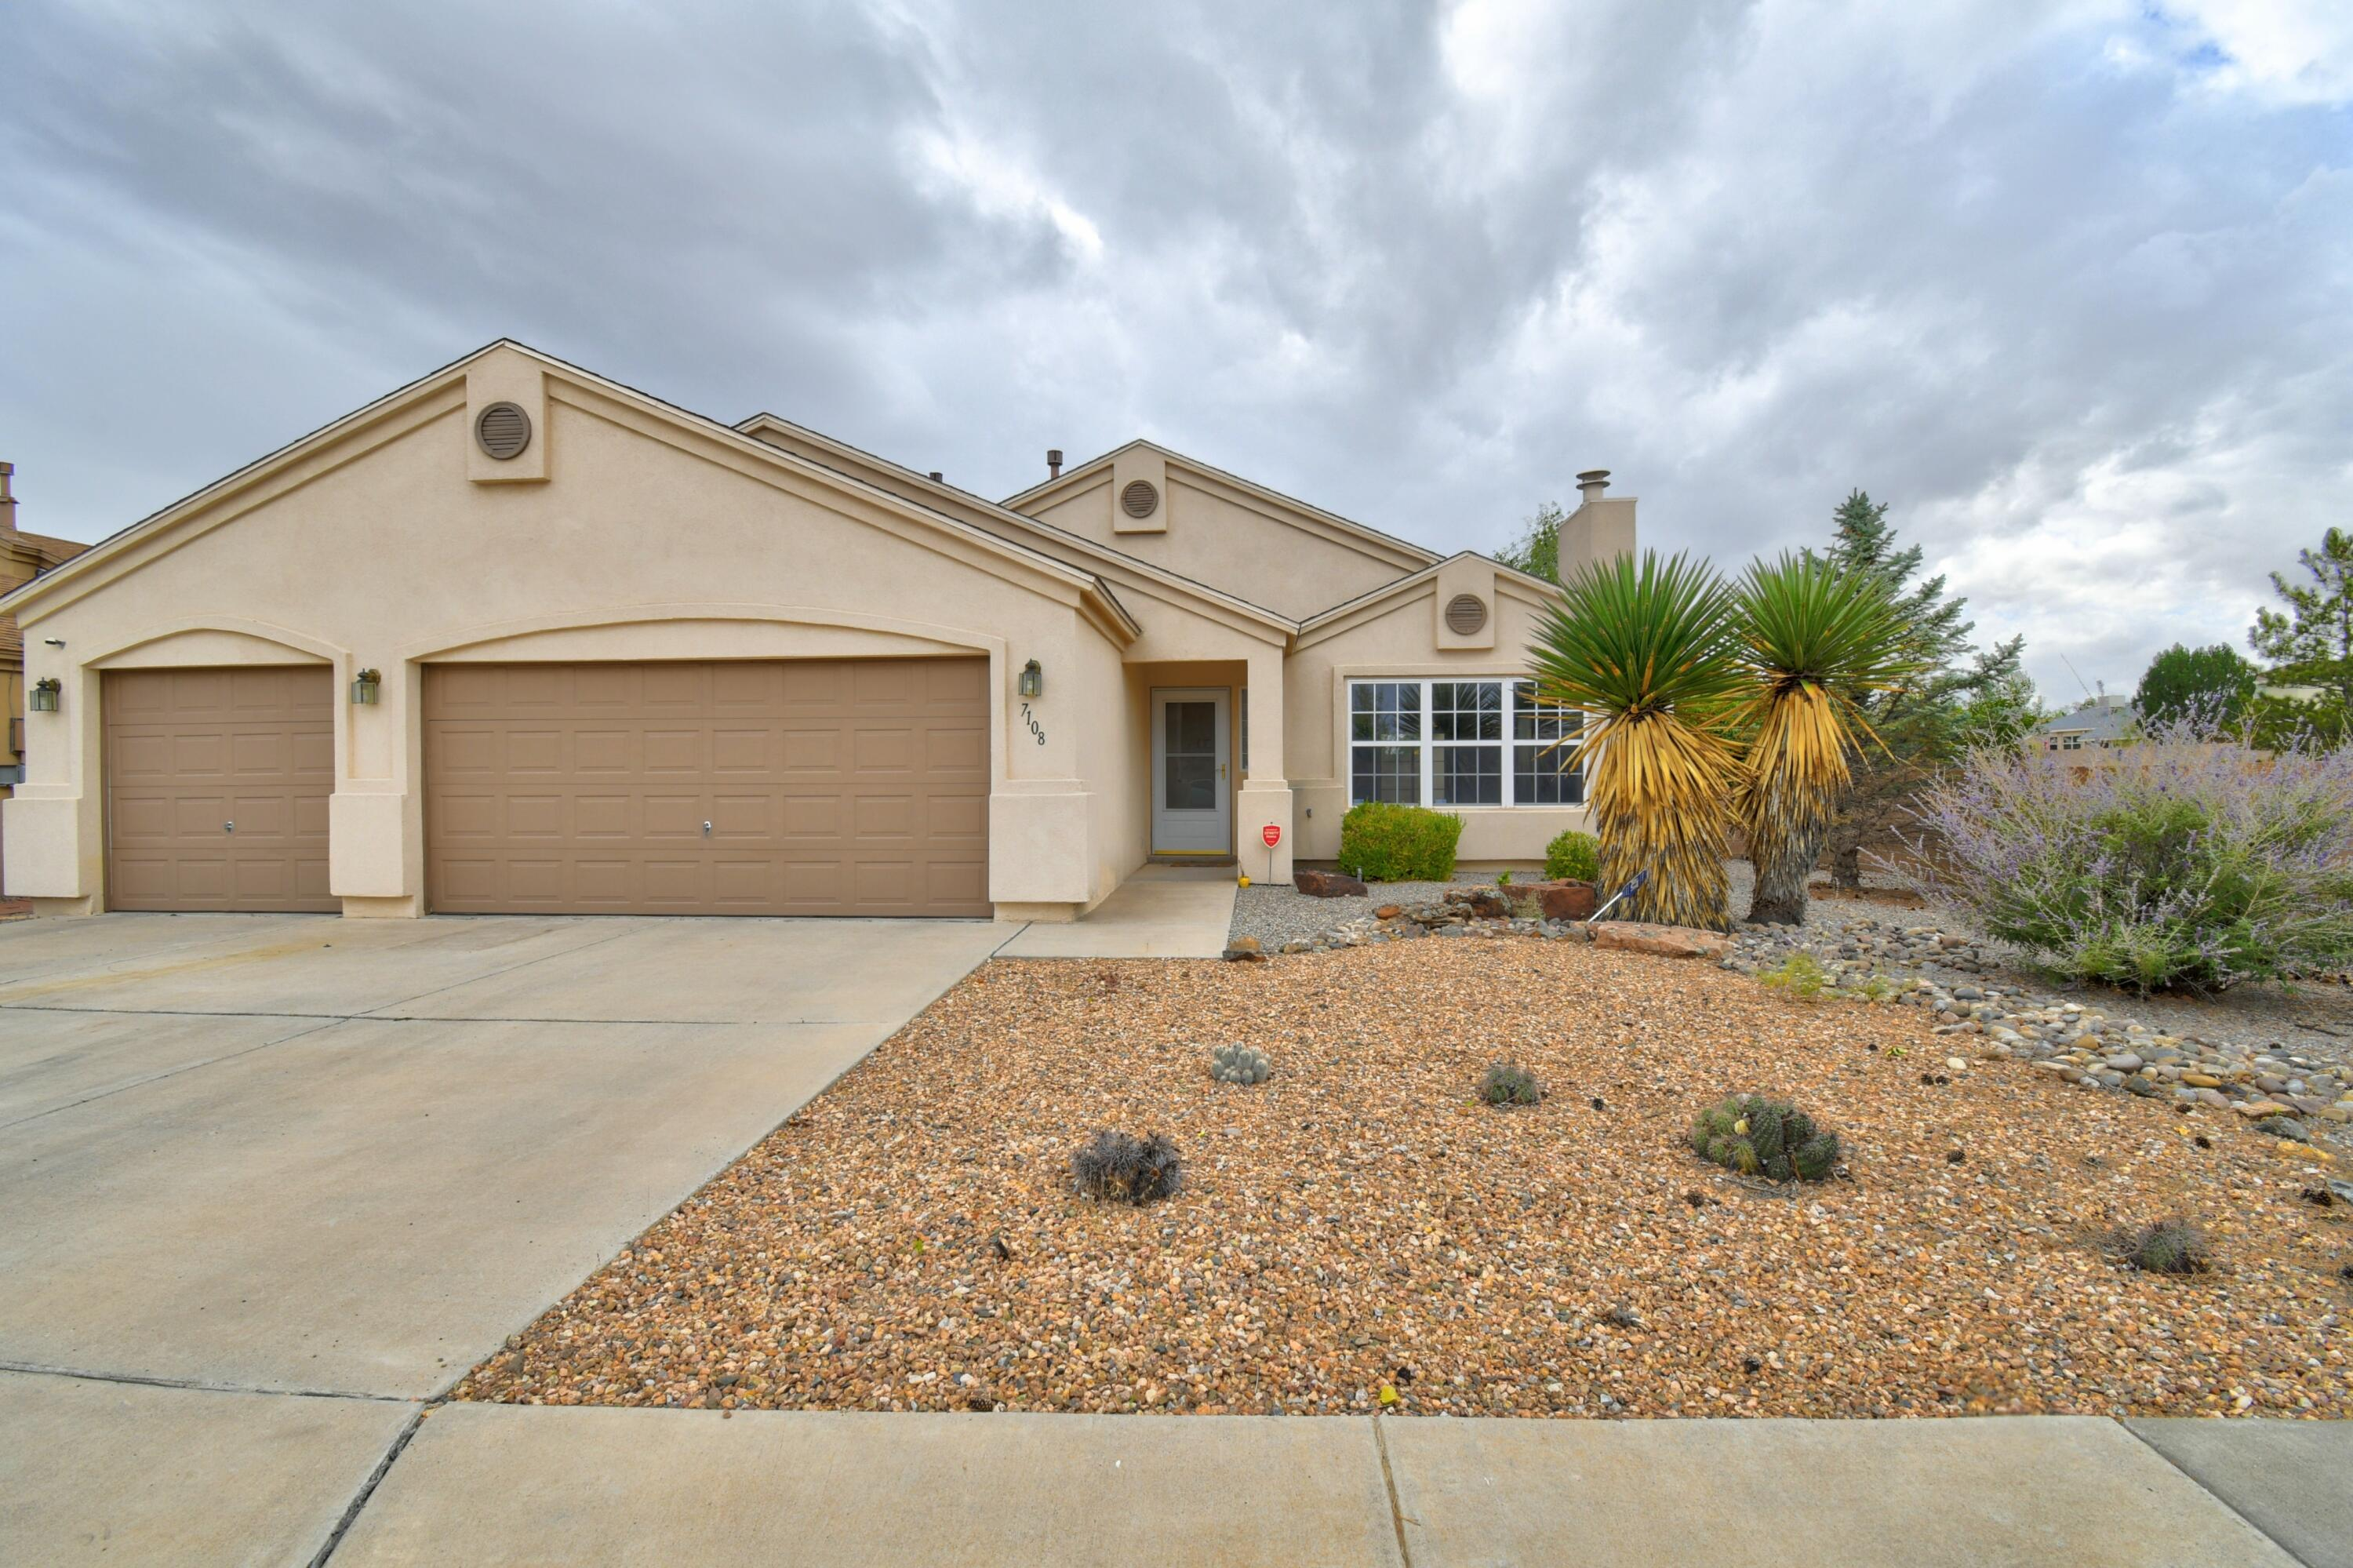 Fantastic single story Raylee home with 3 bedrooms, 2 full baths and an incredibly spacious 3 car garage. Open & bright floor plan great for entertaining. Cathedral ceilings. Arched openings. Gracious living area with ceiling fan & custom tile surround fireplace. Bose surround sound system and speakers included! Kitchen is very spacious with island, dining area and plenty of cabinet space. Sliding doors lead to oversized covered patio perfect for BBQs and enjoying the outdoors.